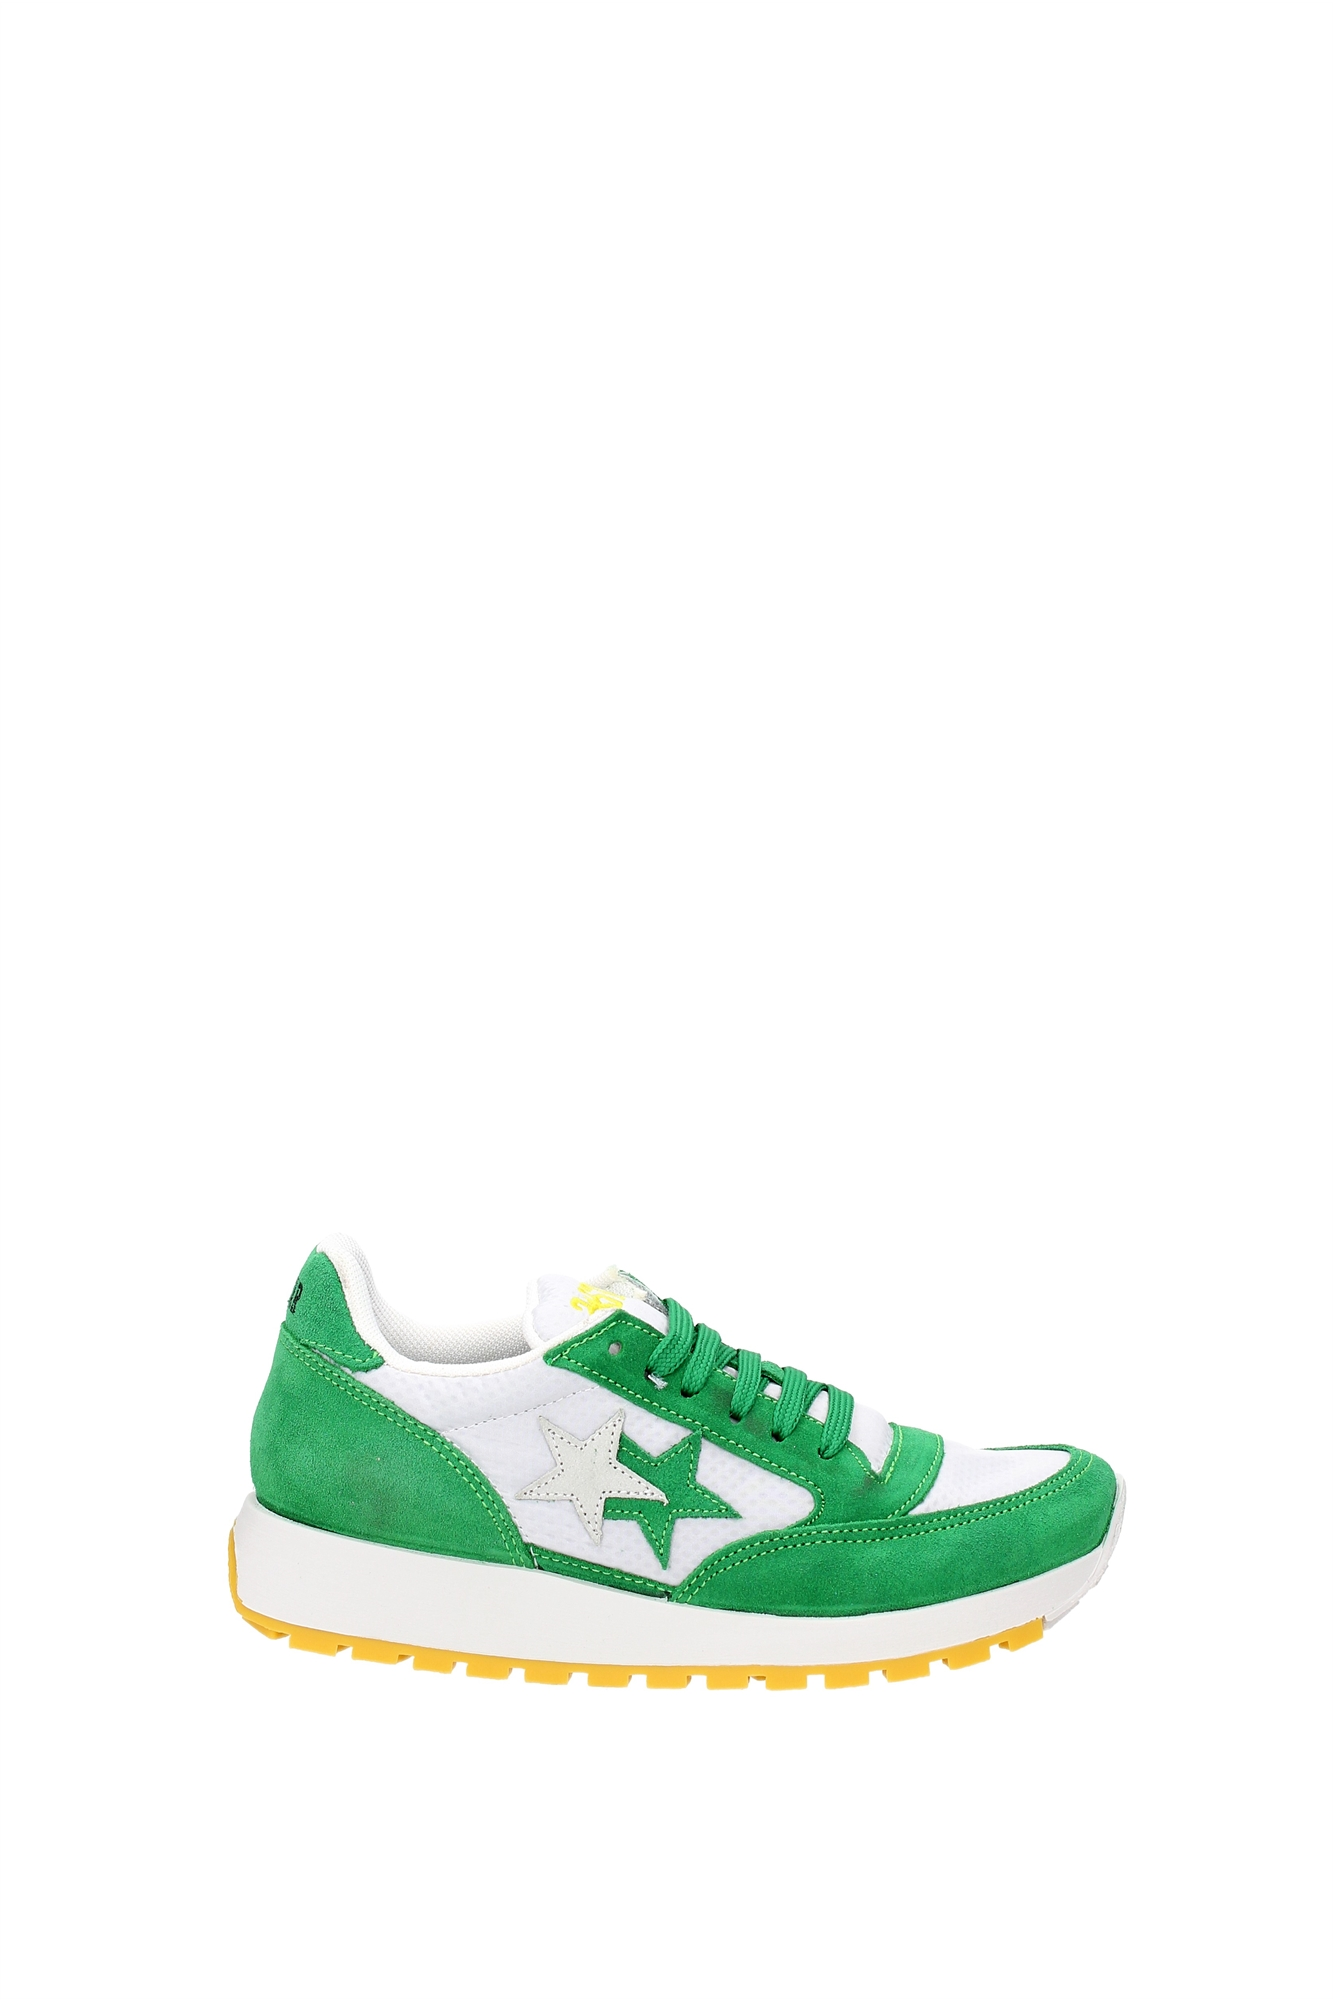 Sneakers 2star 2star Sneakers Damenschuhe -  (2SD1149) 7526a3